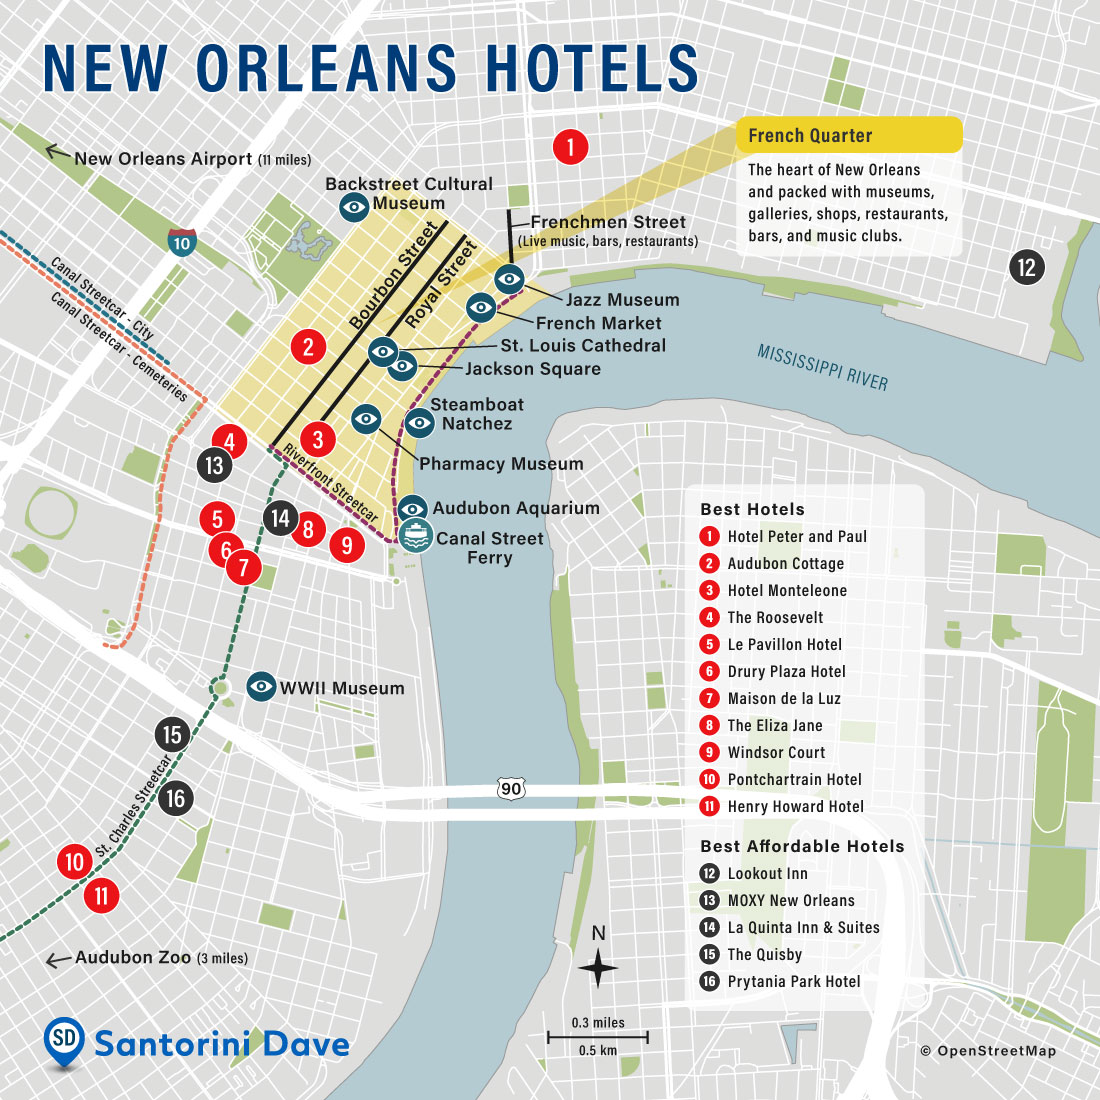 Map of Best Hotels and Neighborhoods in New Orleans, Louisiana.